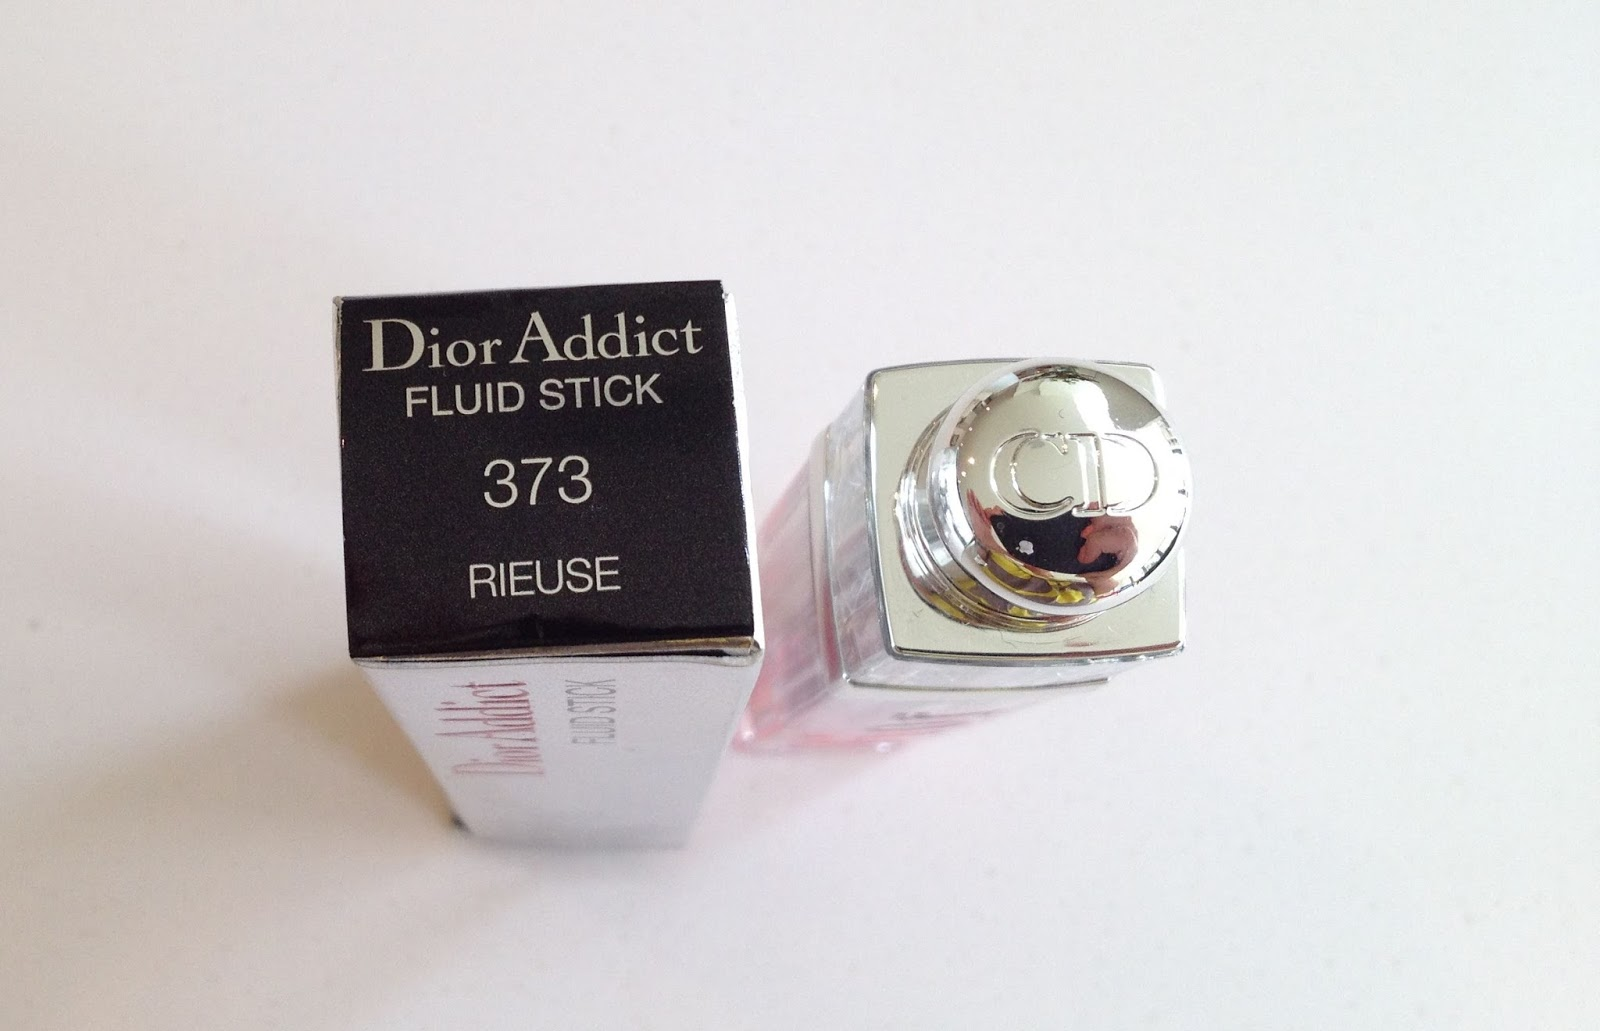 Dior Fluid Stick 373 Rieuse packaging